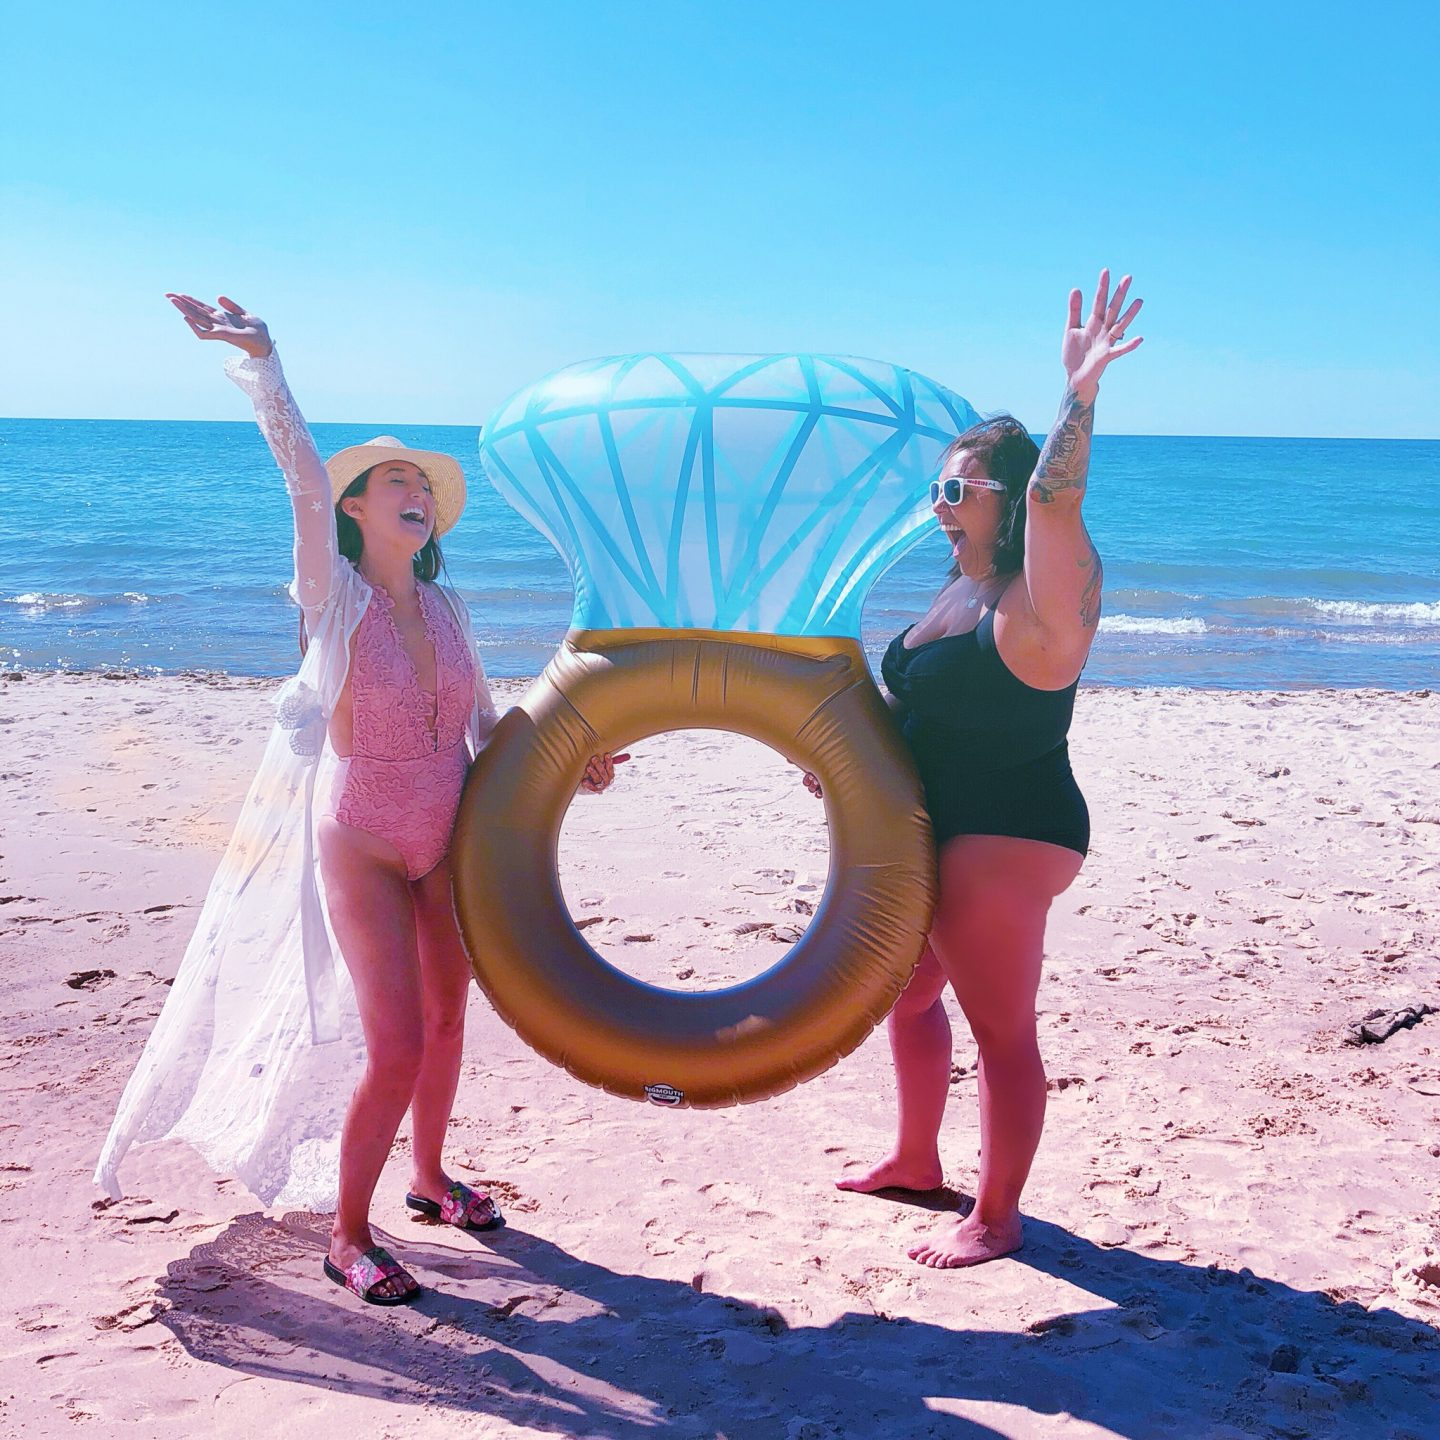 Bachelorette party that's affordable and fun, lake michigan, diamond floatie, bachelorette party, union pier michigan, diamond ring pool float